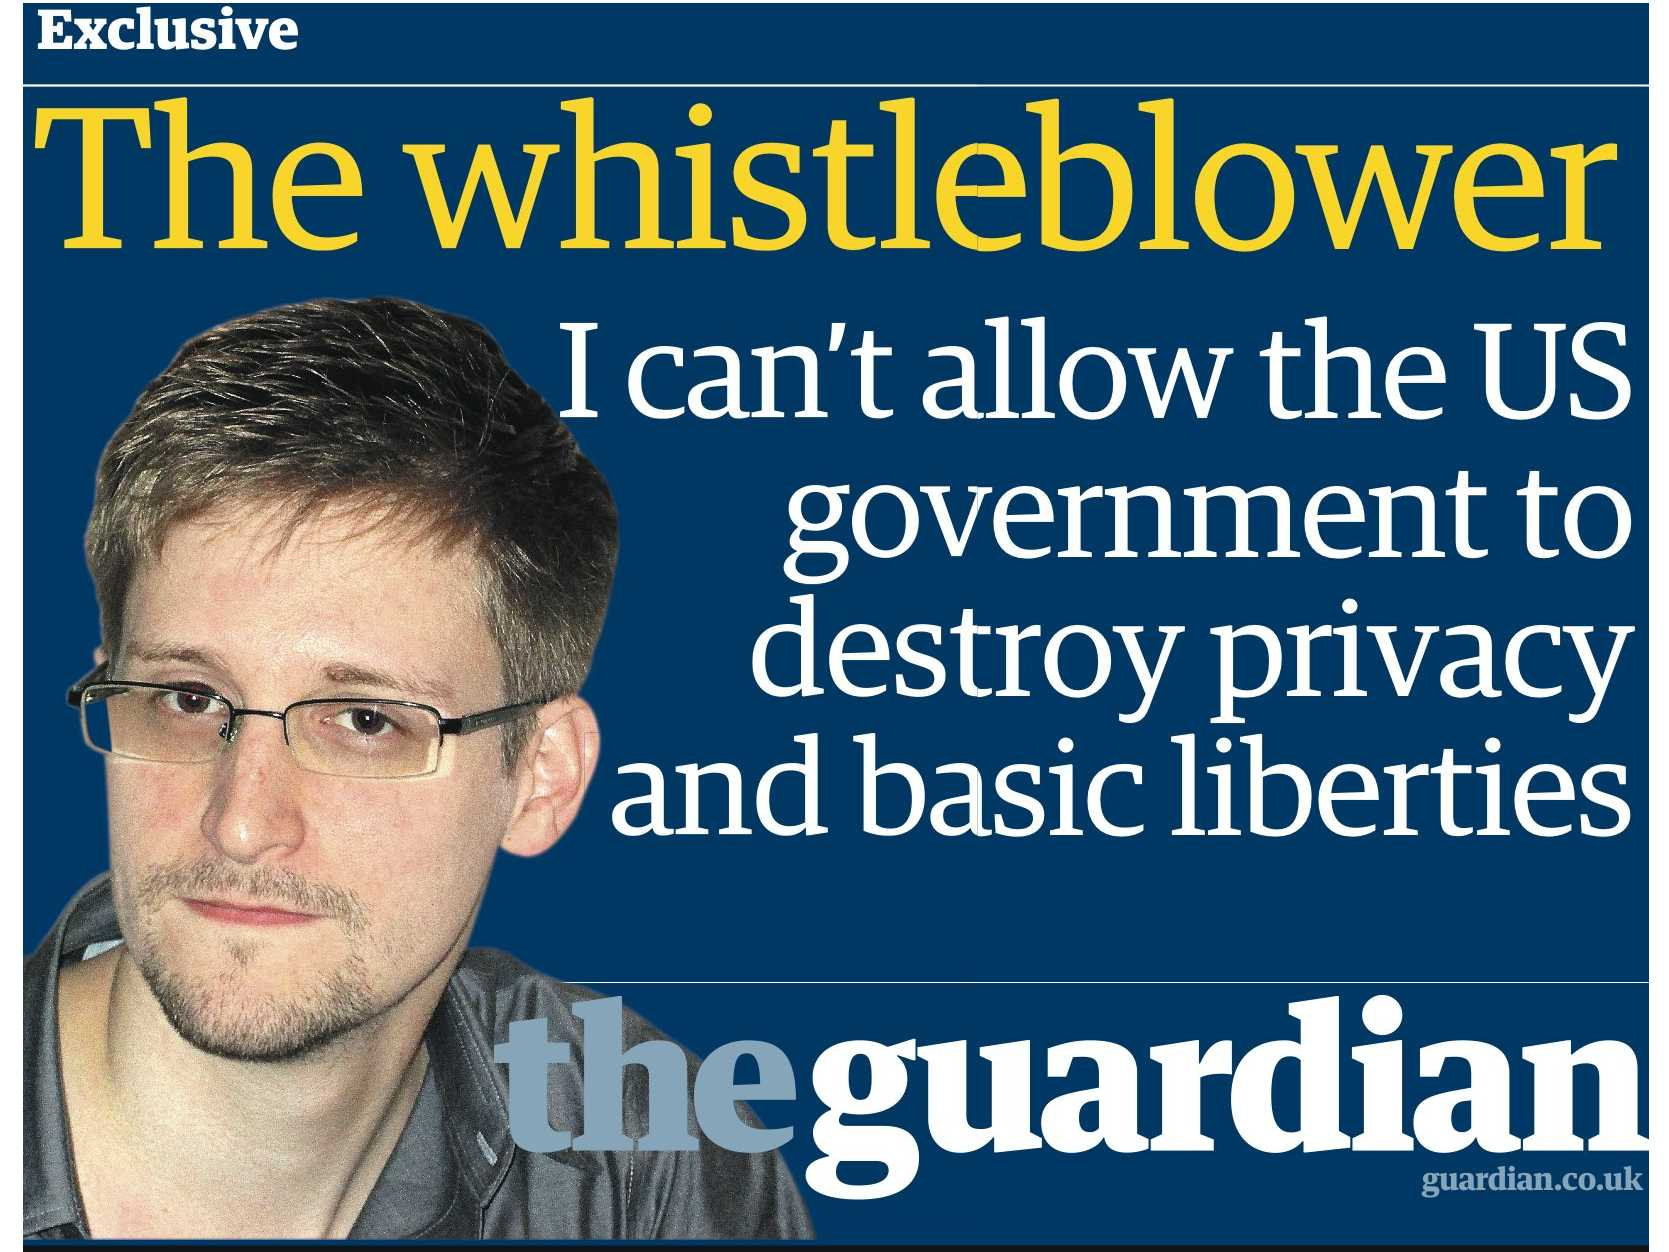 Edward Snowden in The Guardian on allowing the US government to destroy liberties